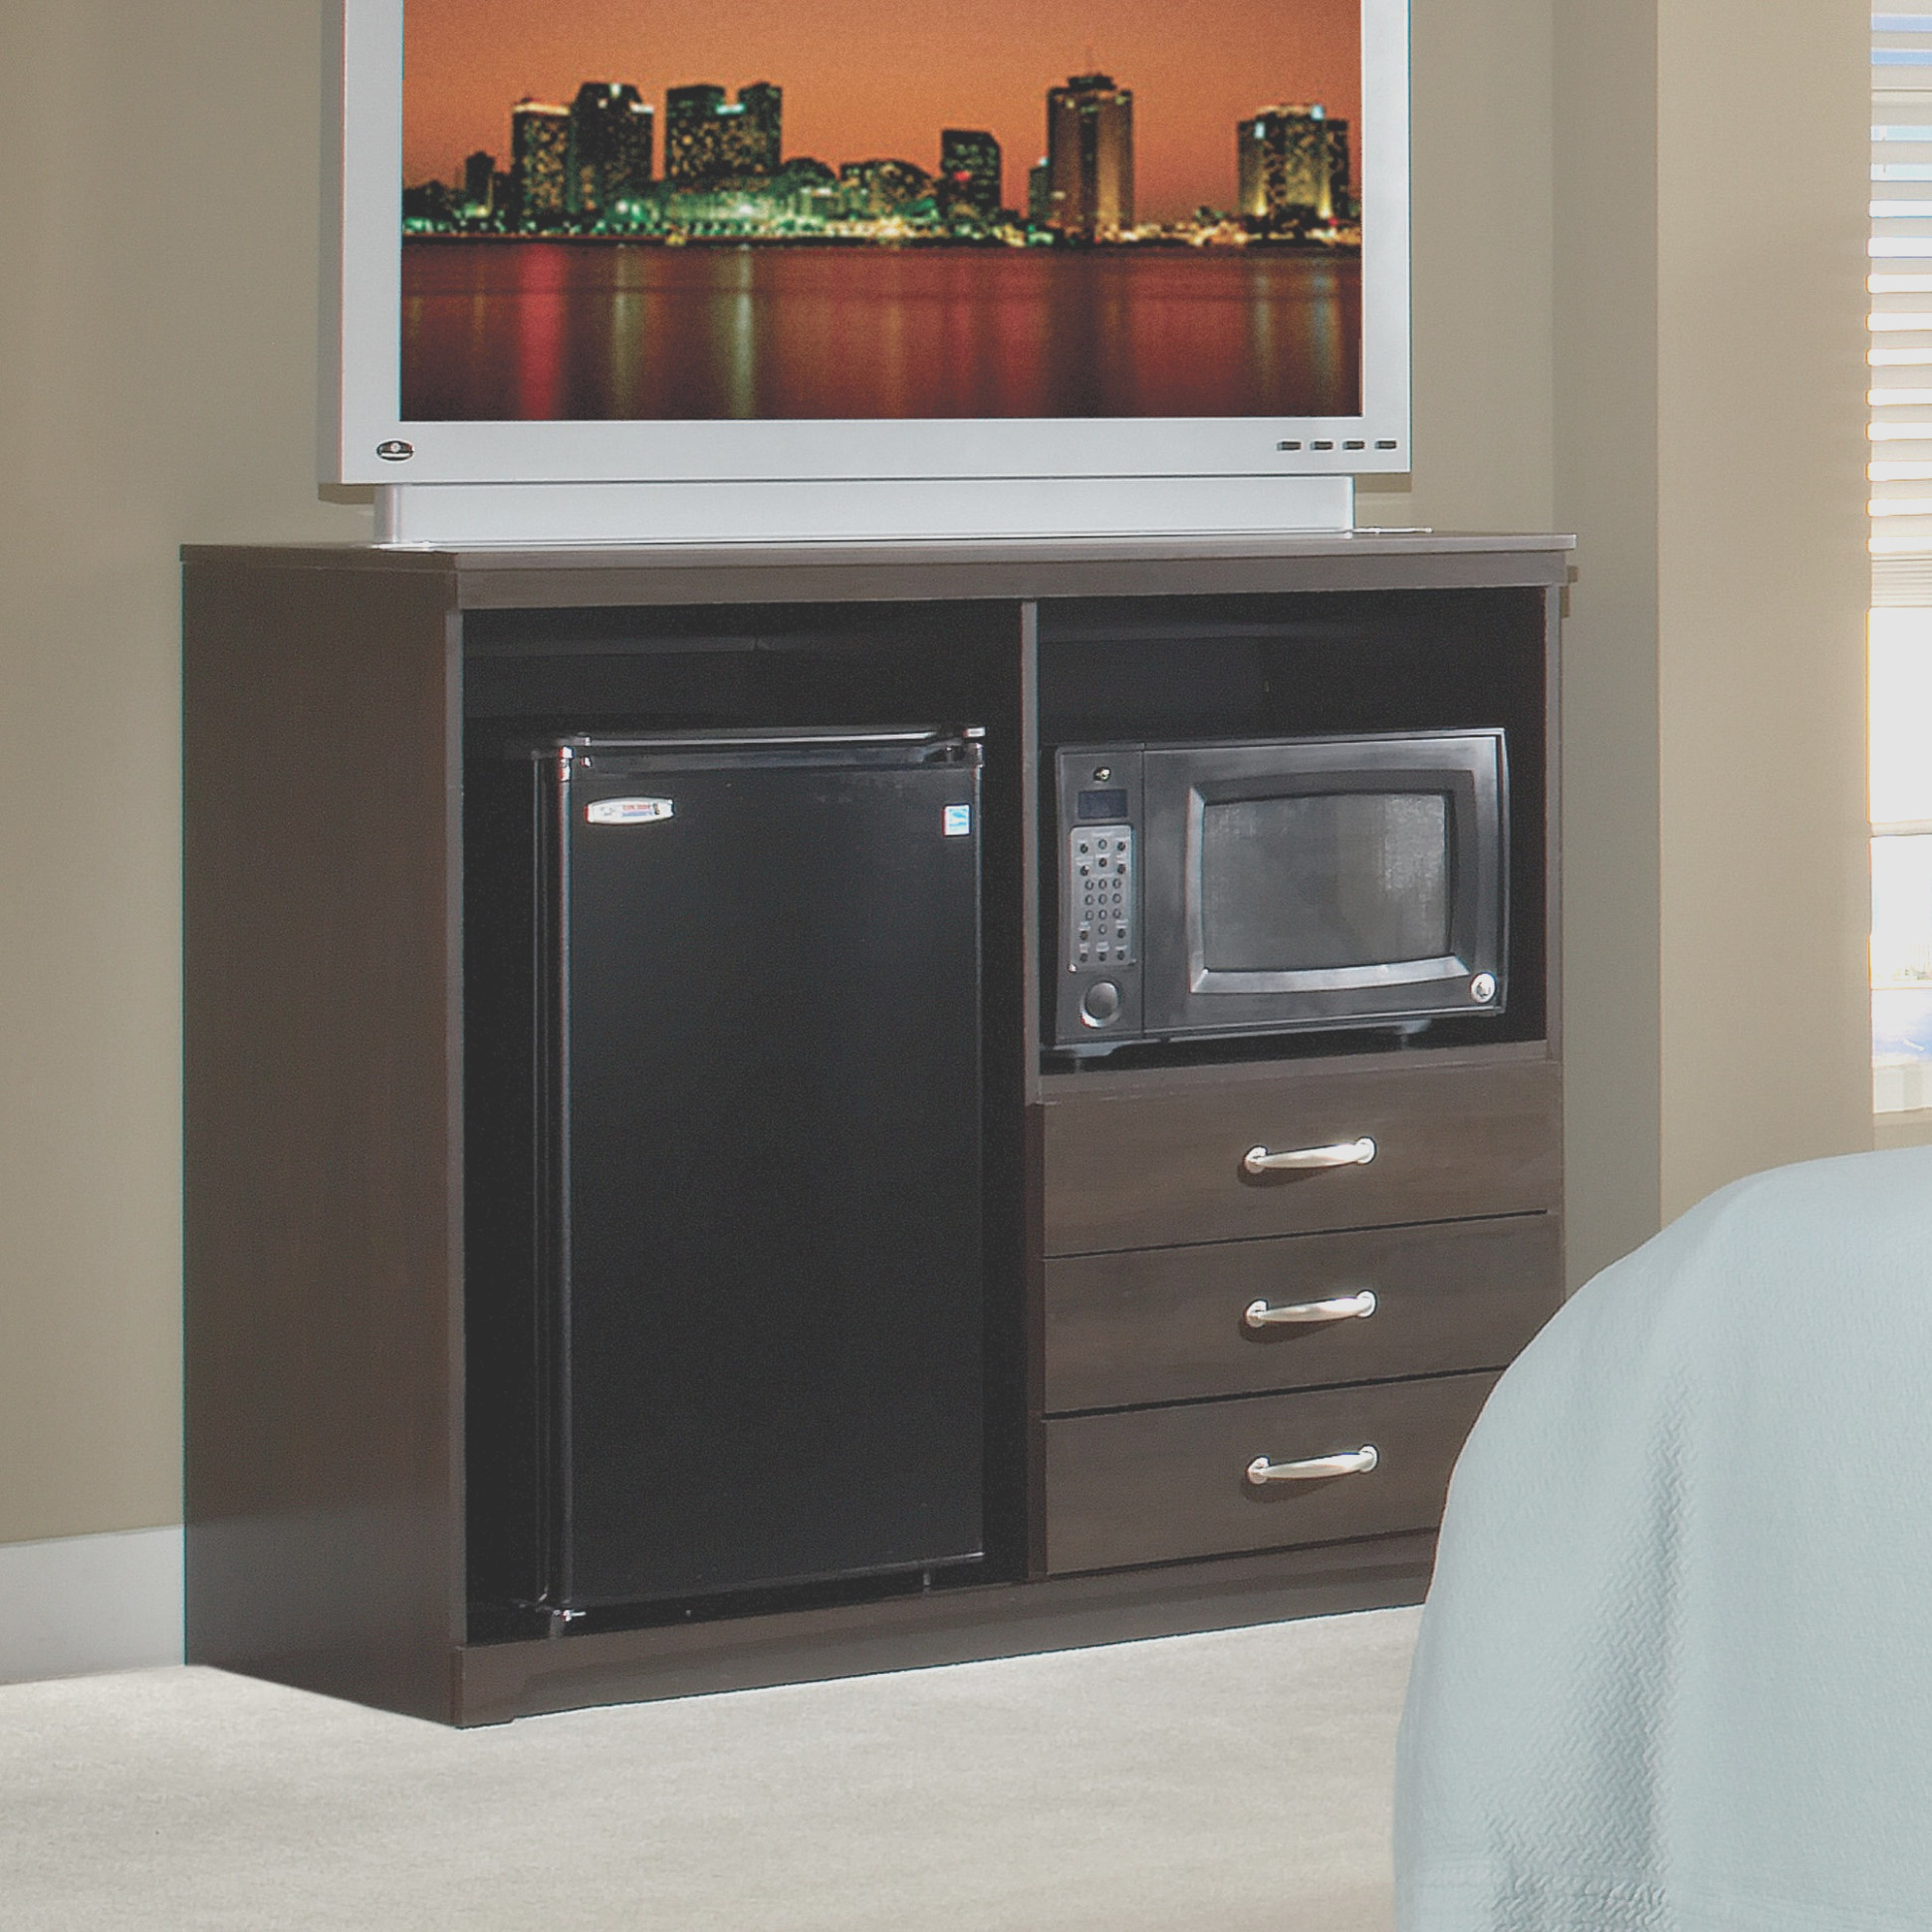 In Room Microwave  Refrigerator Cabinet